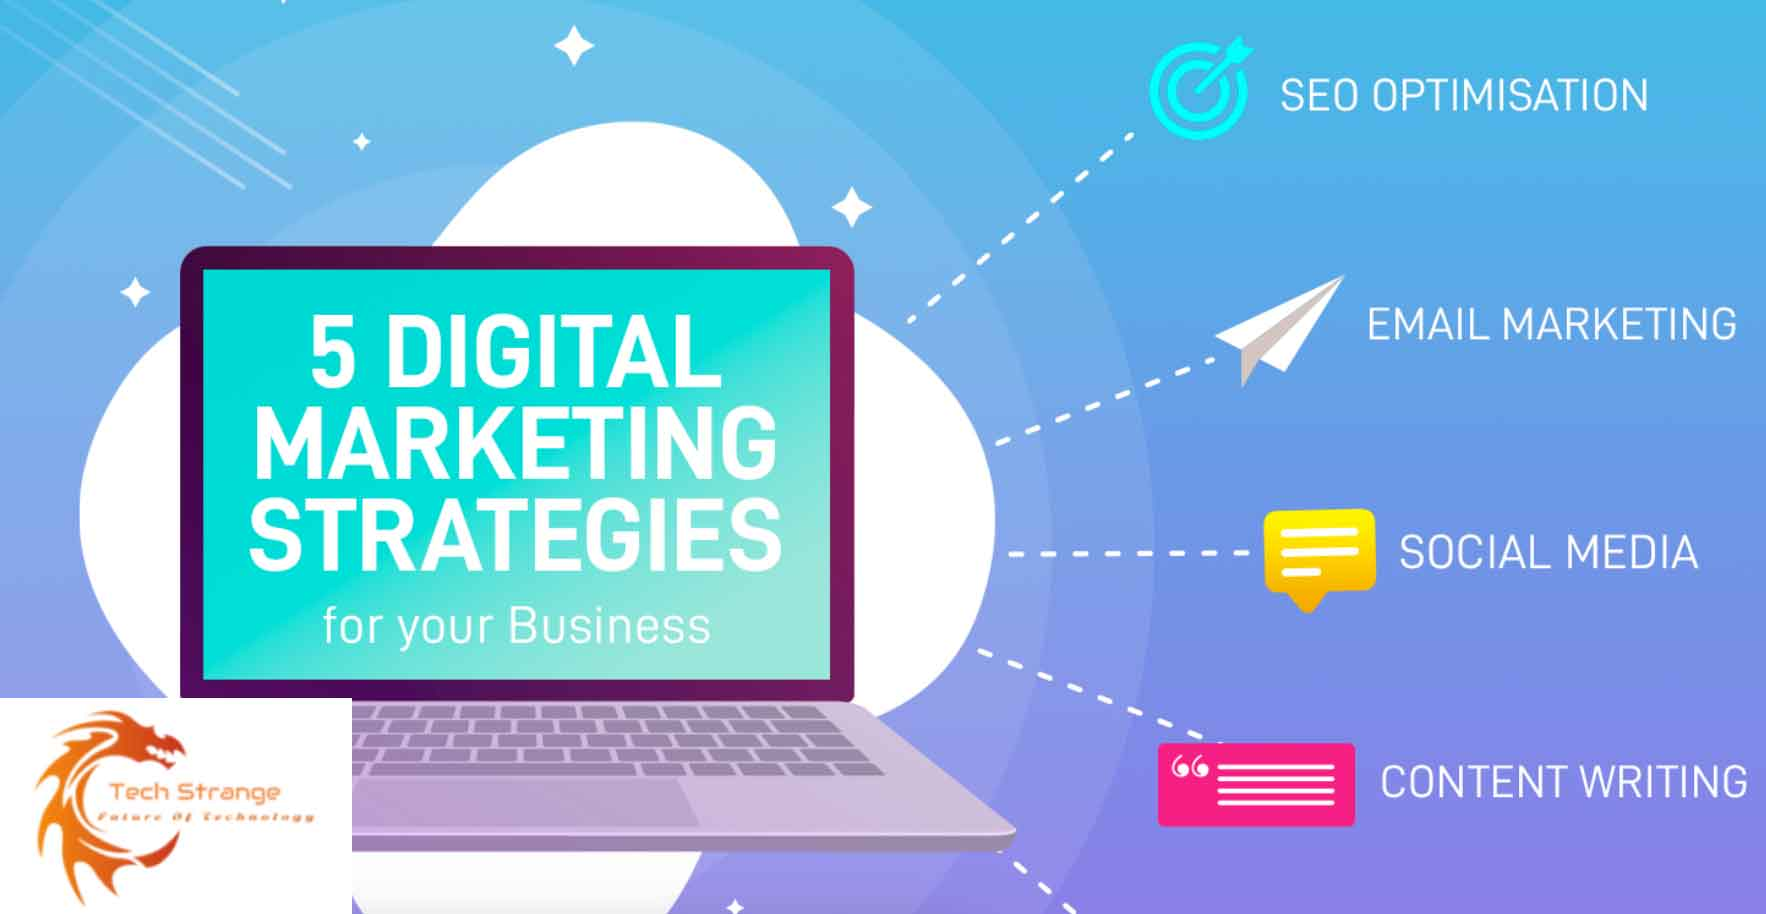 5 digital marketing strategies for after COVID startups business tactics